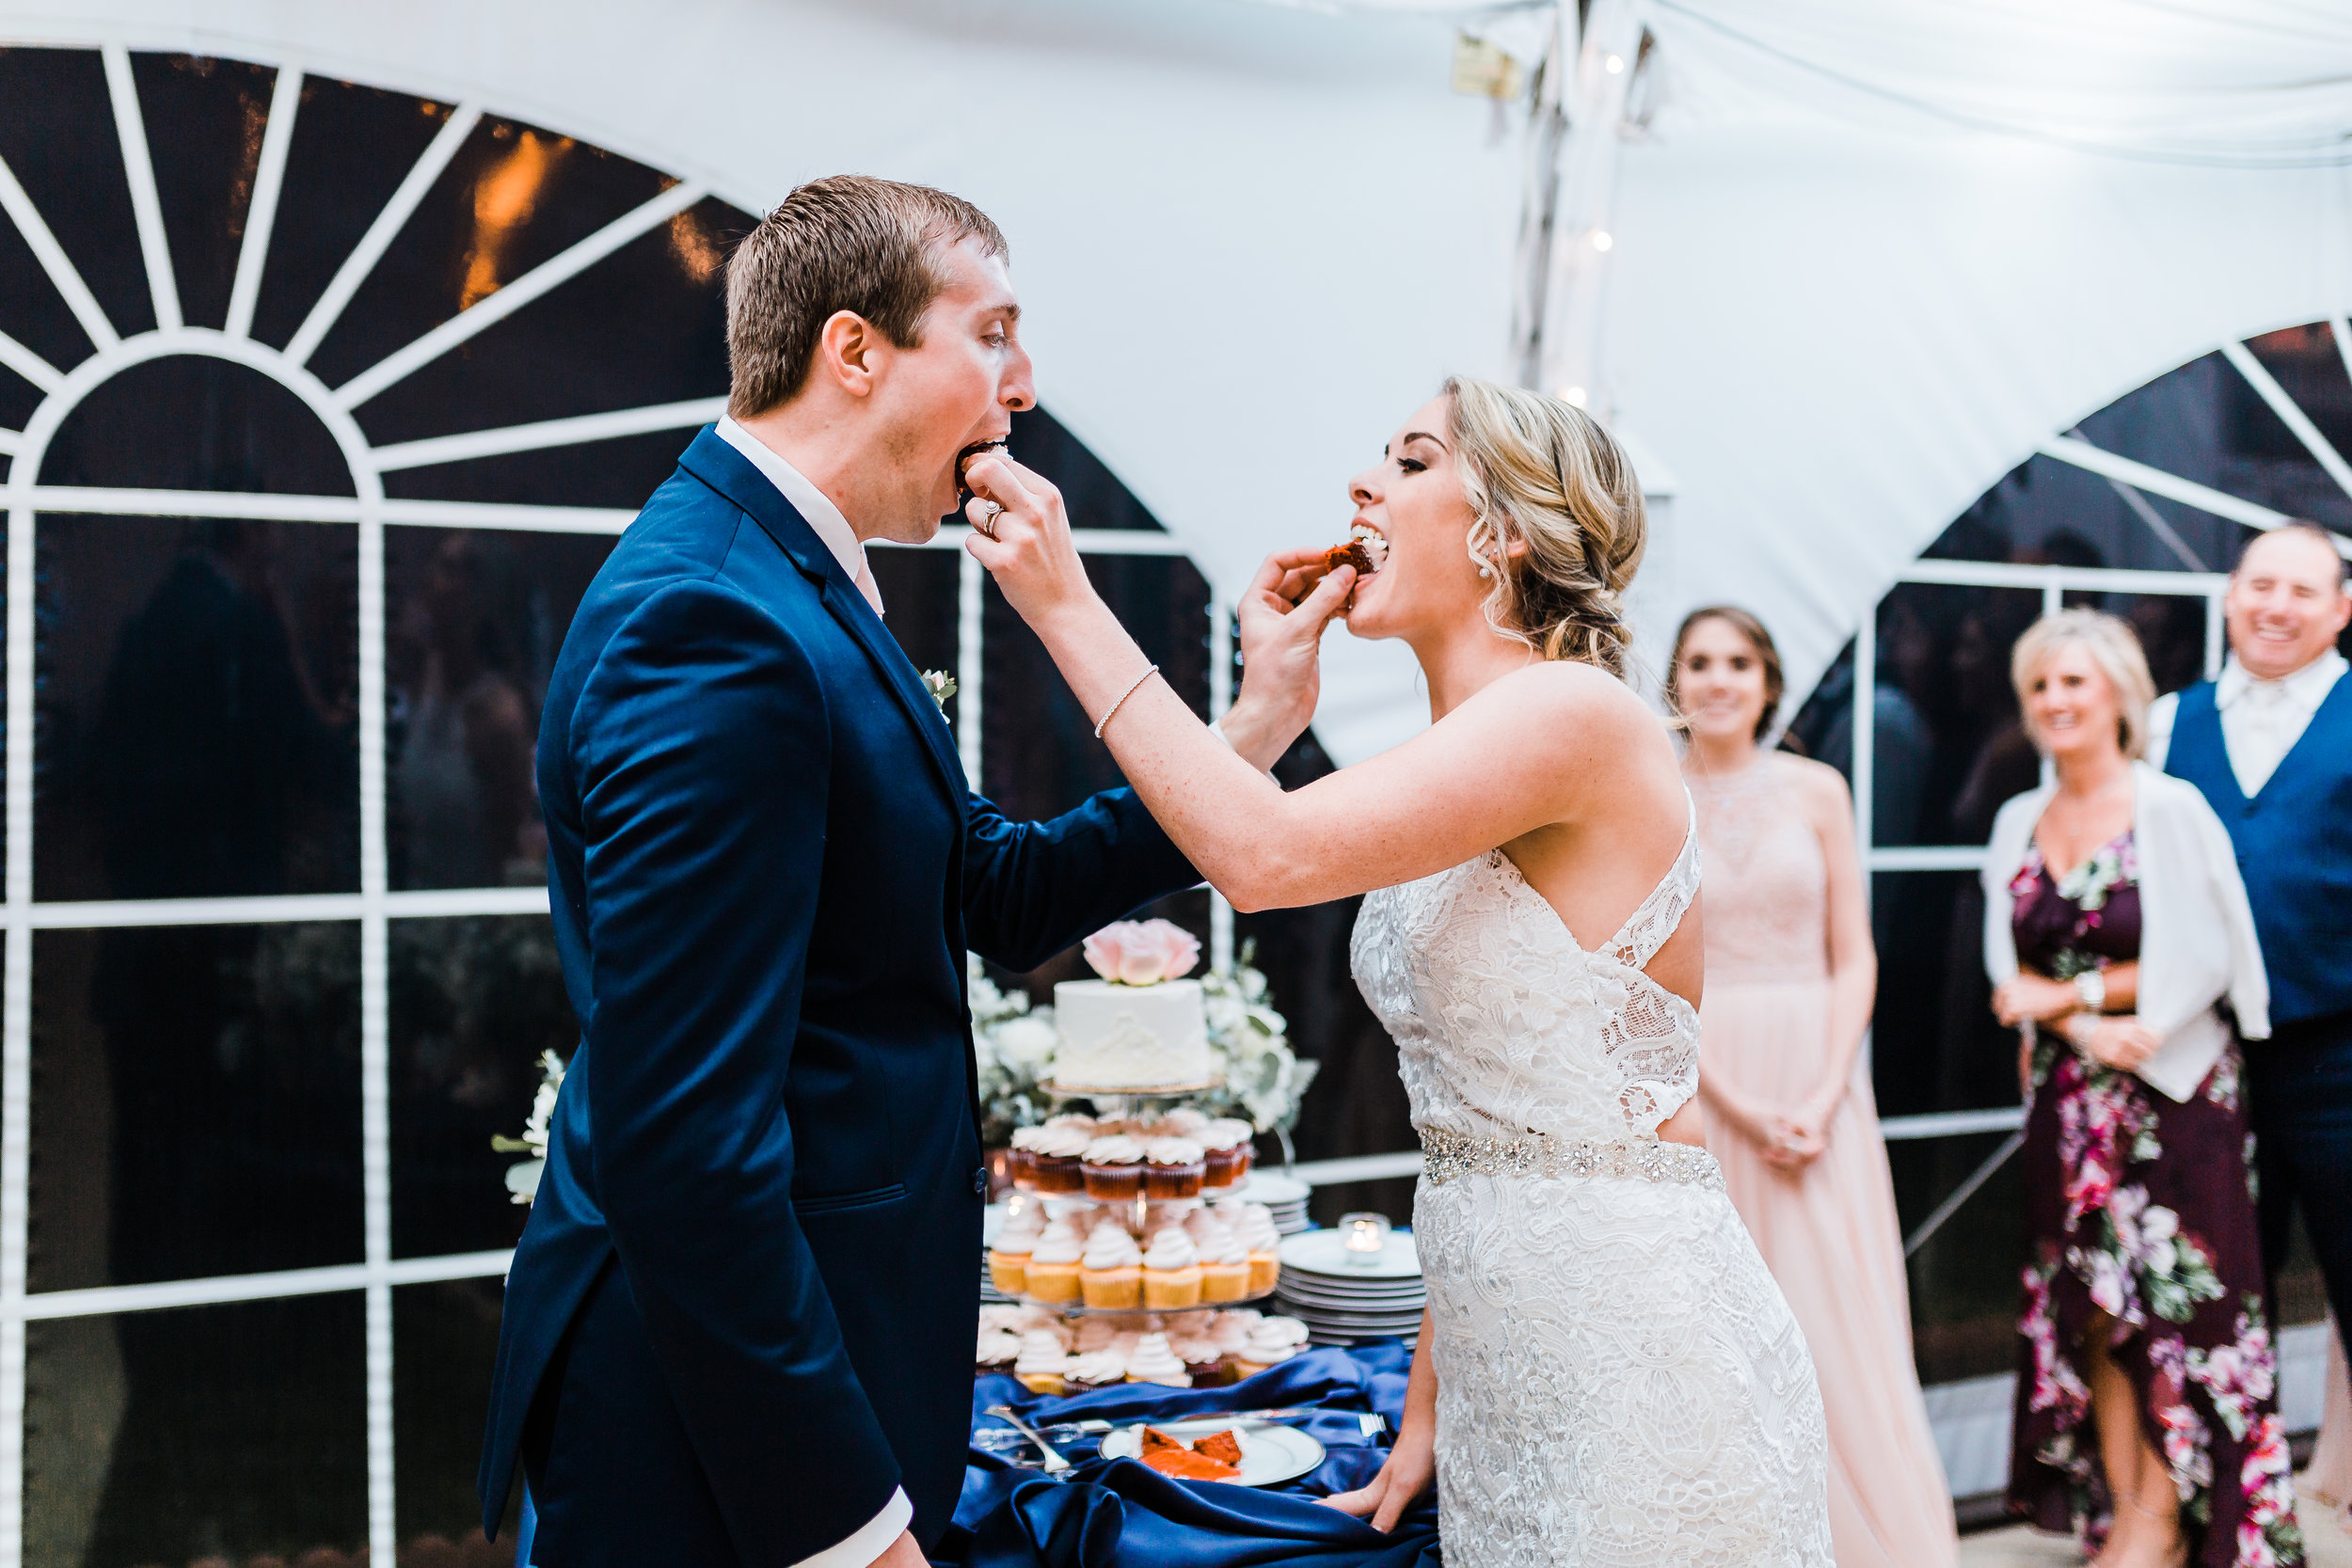 maryland couple feeding each other their cake - md wedding photographer - waterfront wedding venue